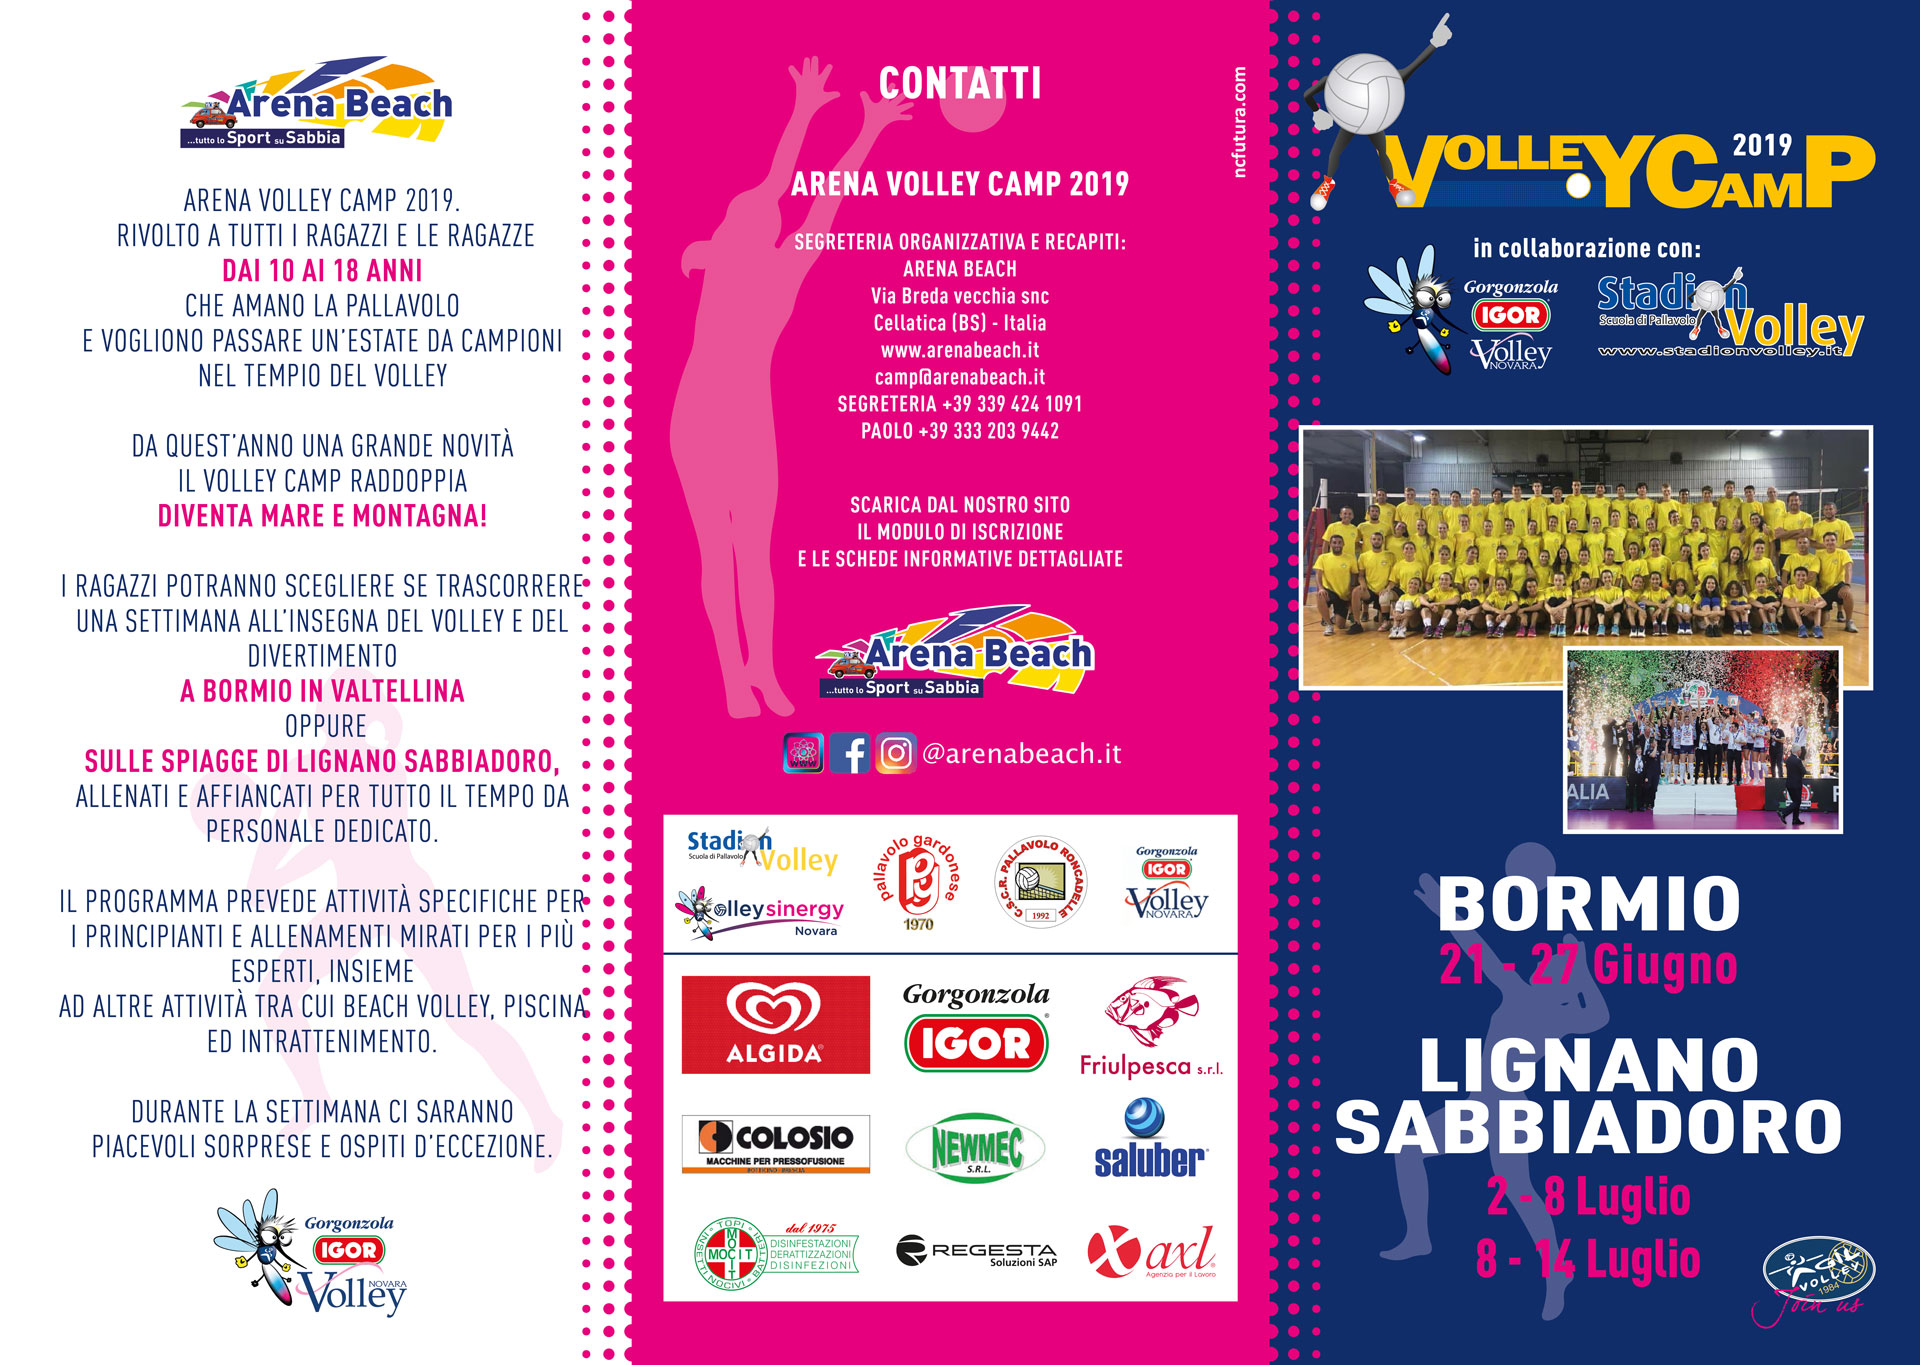 arena volley camp 2019 flyer fronte